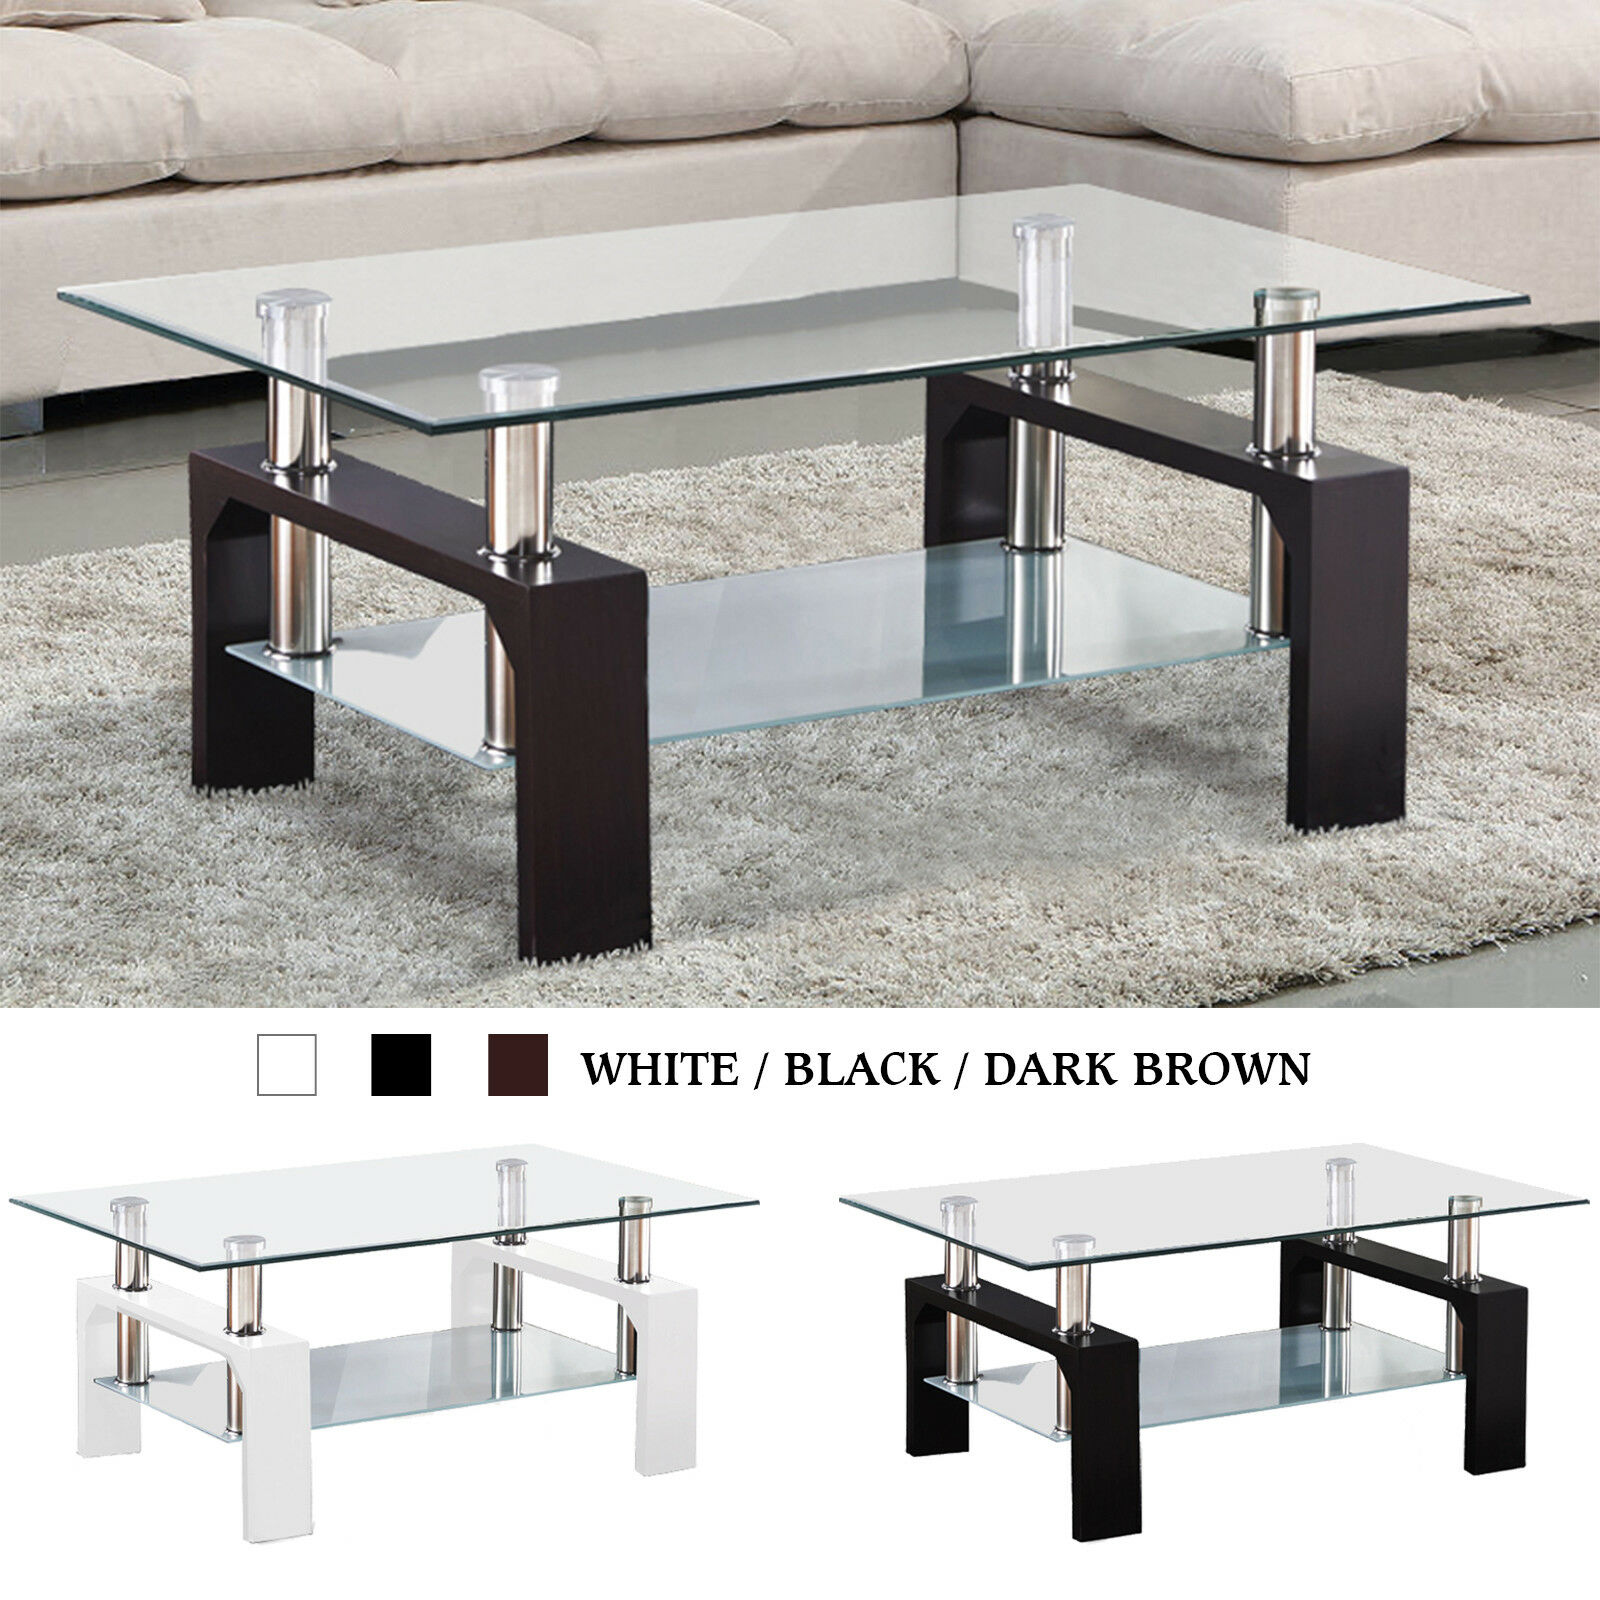 glass coffee table set metal end tables piece living room modern furniture for west elm quality whalen brookhaven desk rustic pine trunk ethan allen history kmart gold shoes